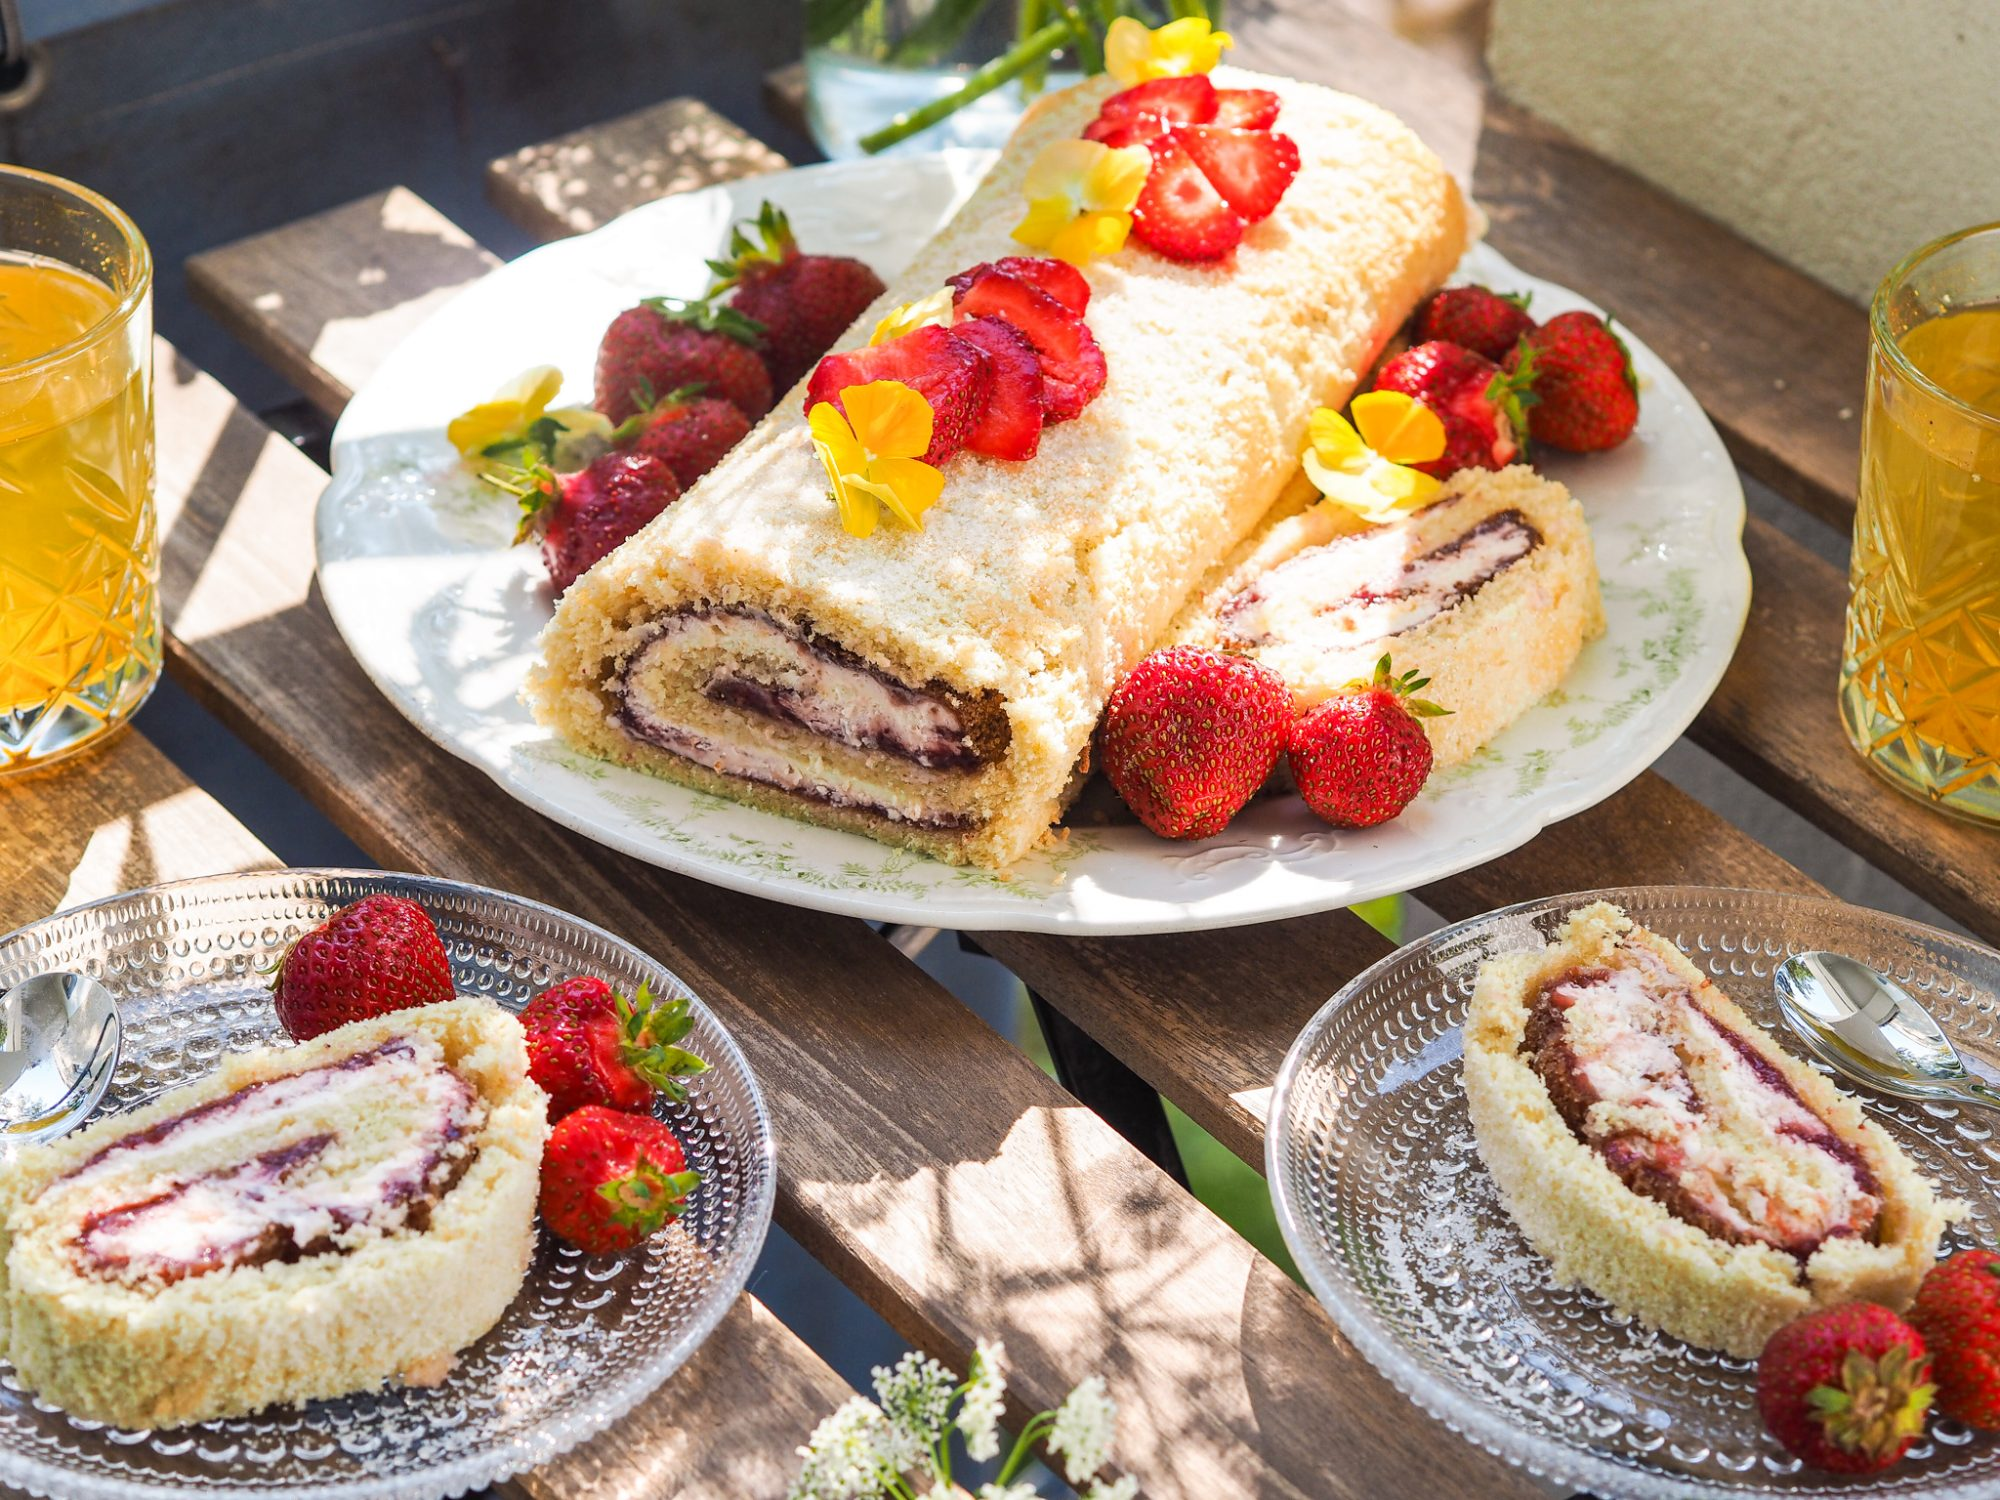 Gluten-free swiss roll